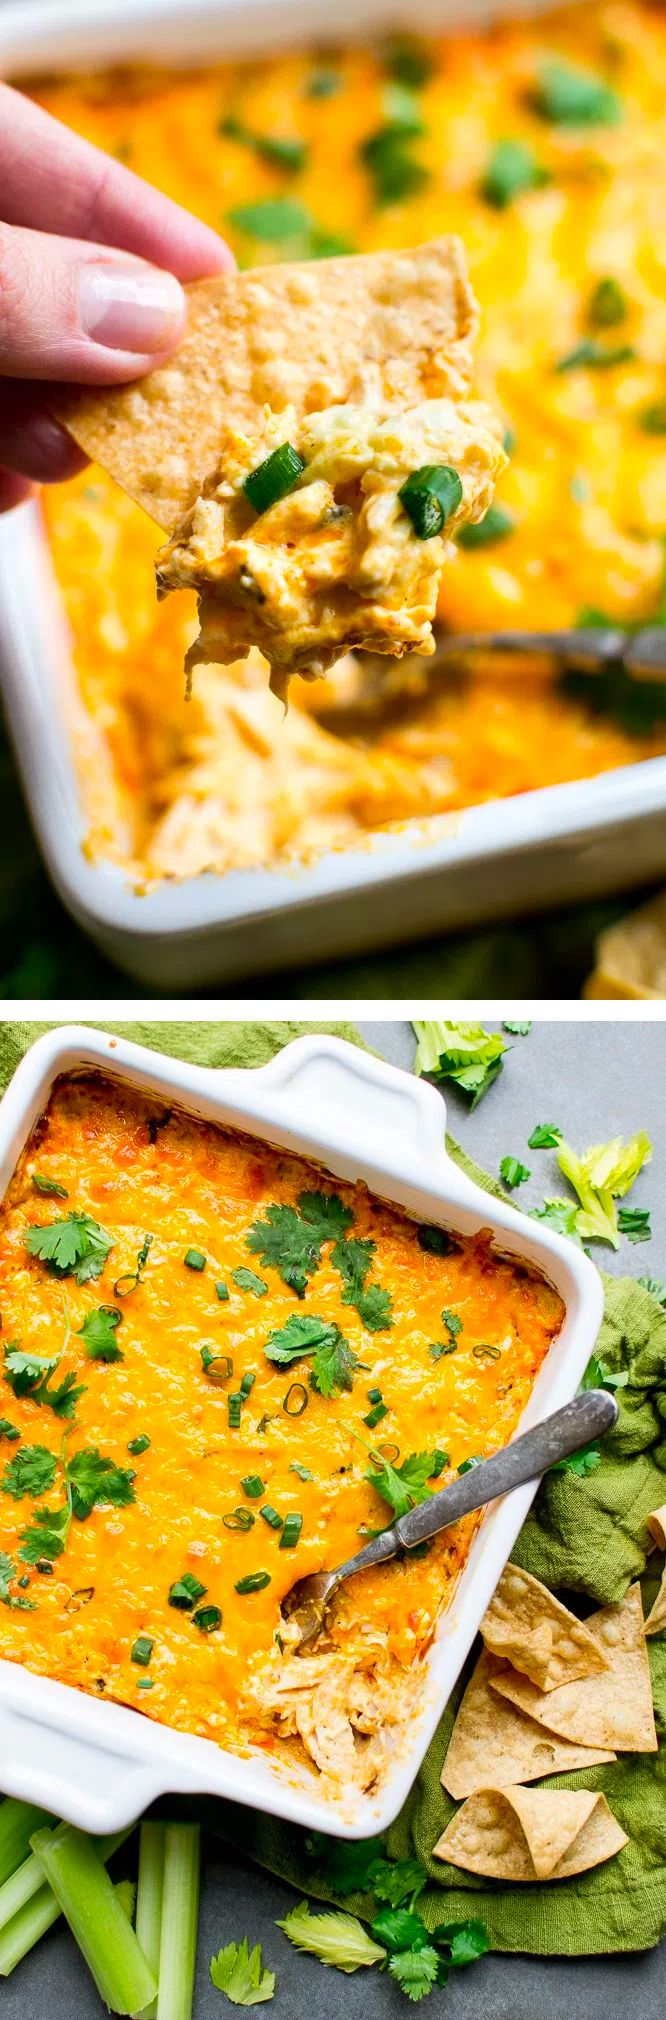 Savory and flavorful Buffalo Chicken Dip makes the perfect game day appetizer.